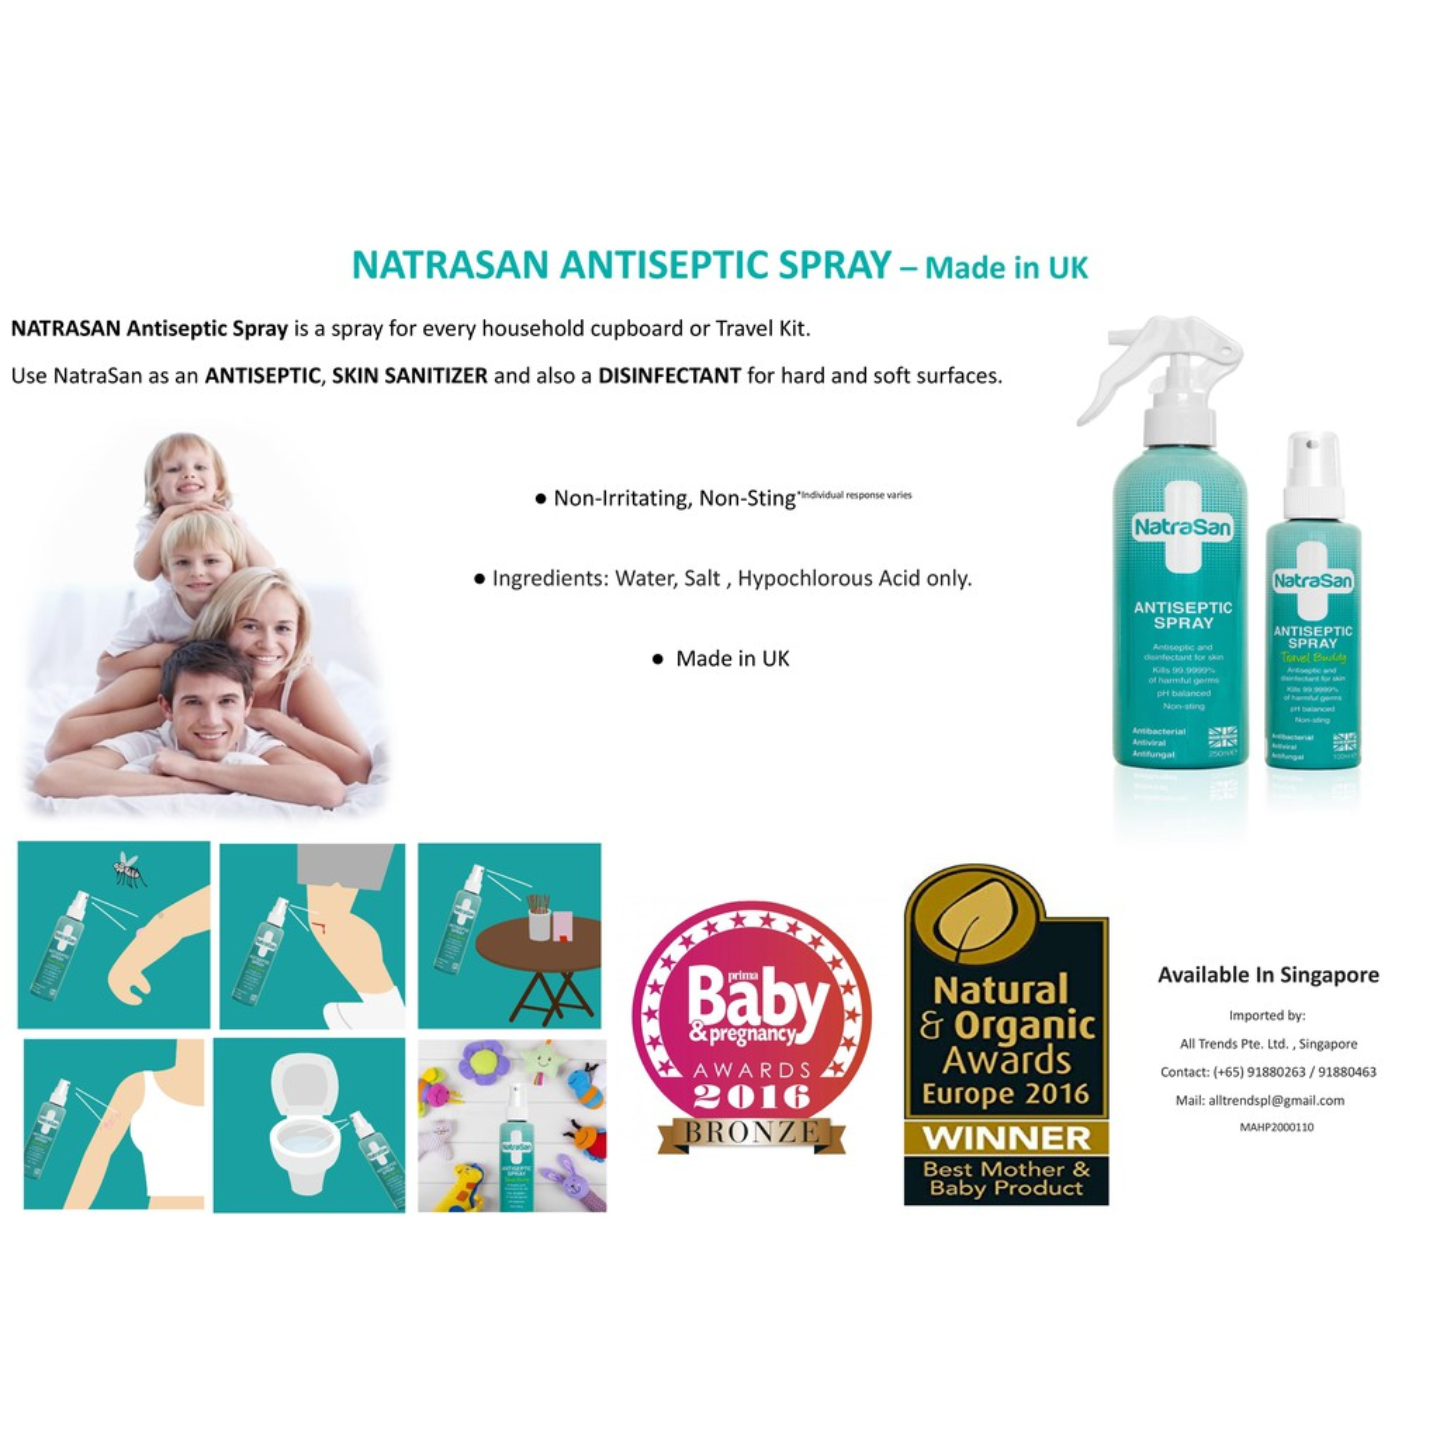 NatraSan Antiseptic Spray 250 ml - Made in UK - Antiseptic, Sanitizer, Disinfectant